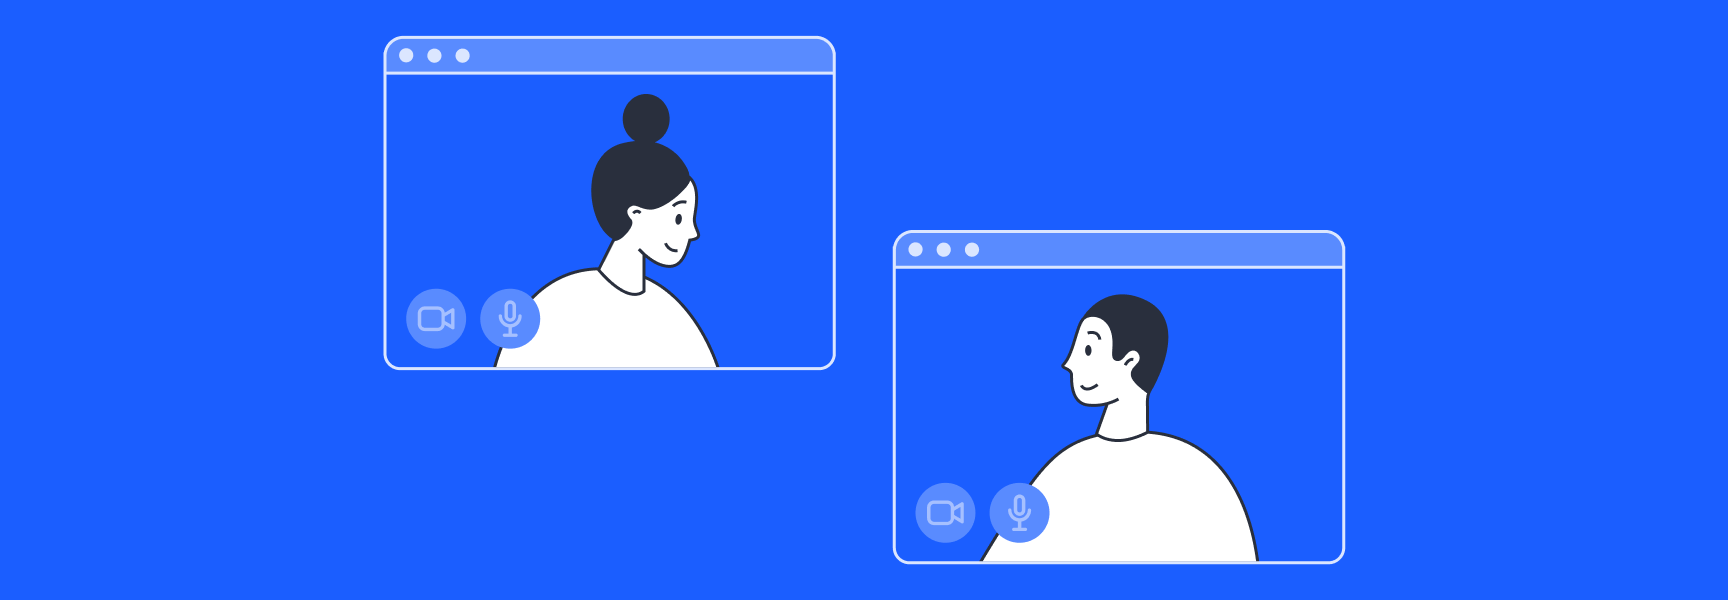 Man and woman in separate virtual meeting boxes, looking at each other and smiling